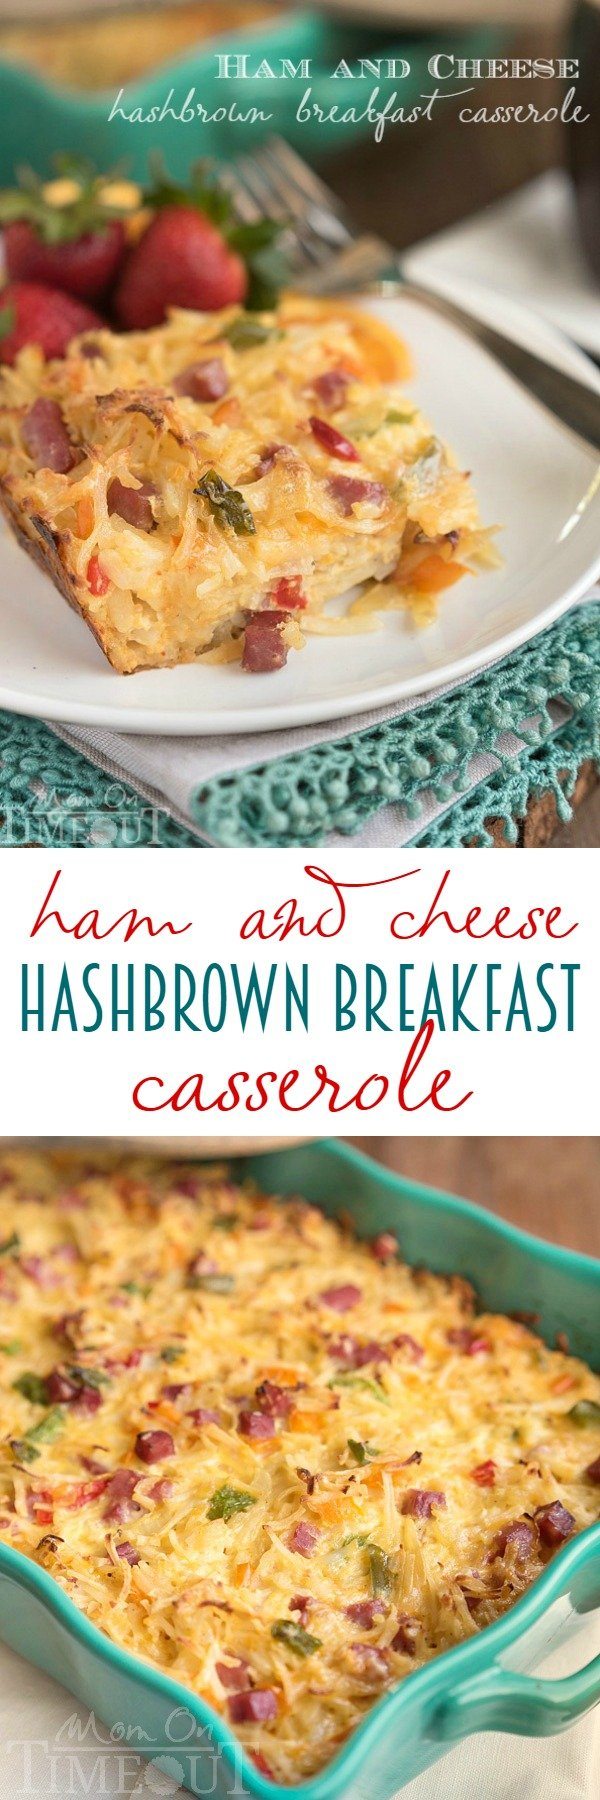 An easy overnight breakfast casserole that can be made in your slow cooker with layers of hash browns, cheese, and breakfast sausage.